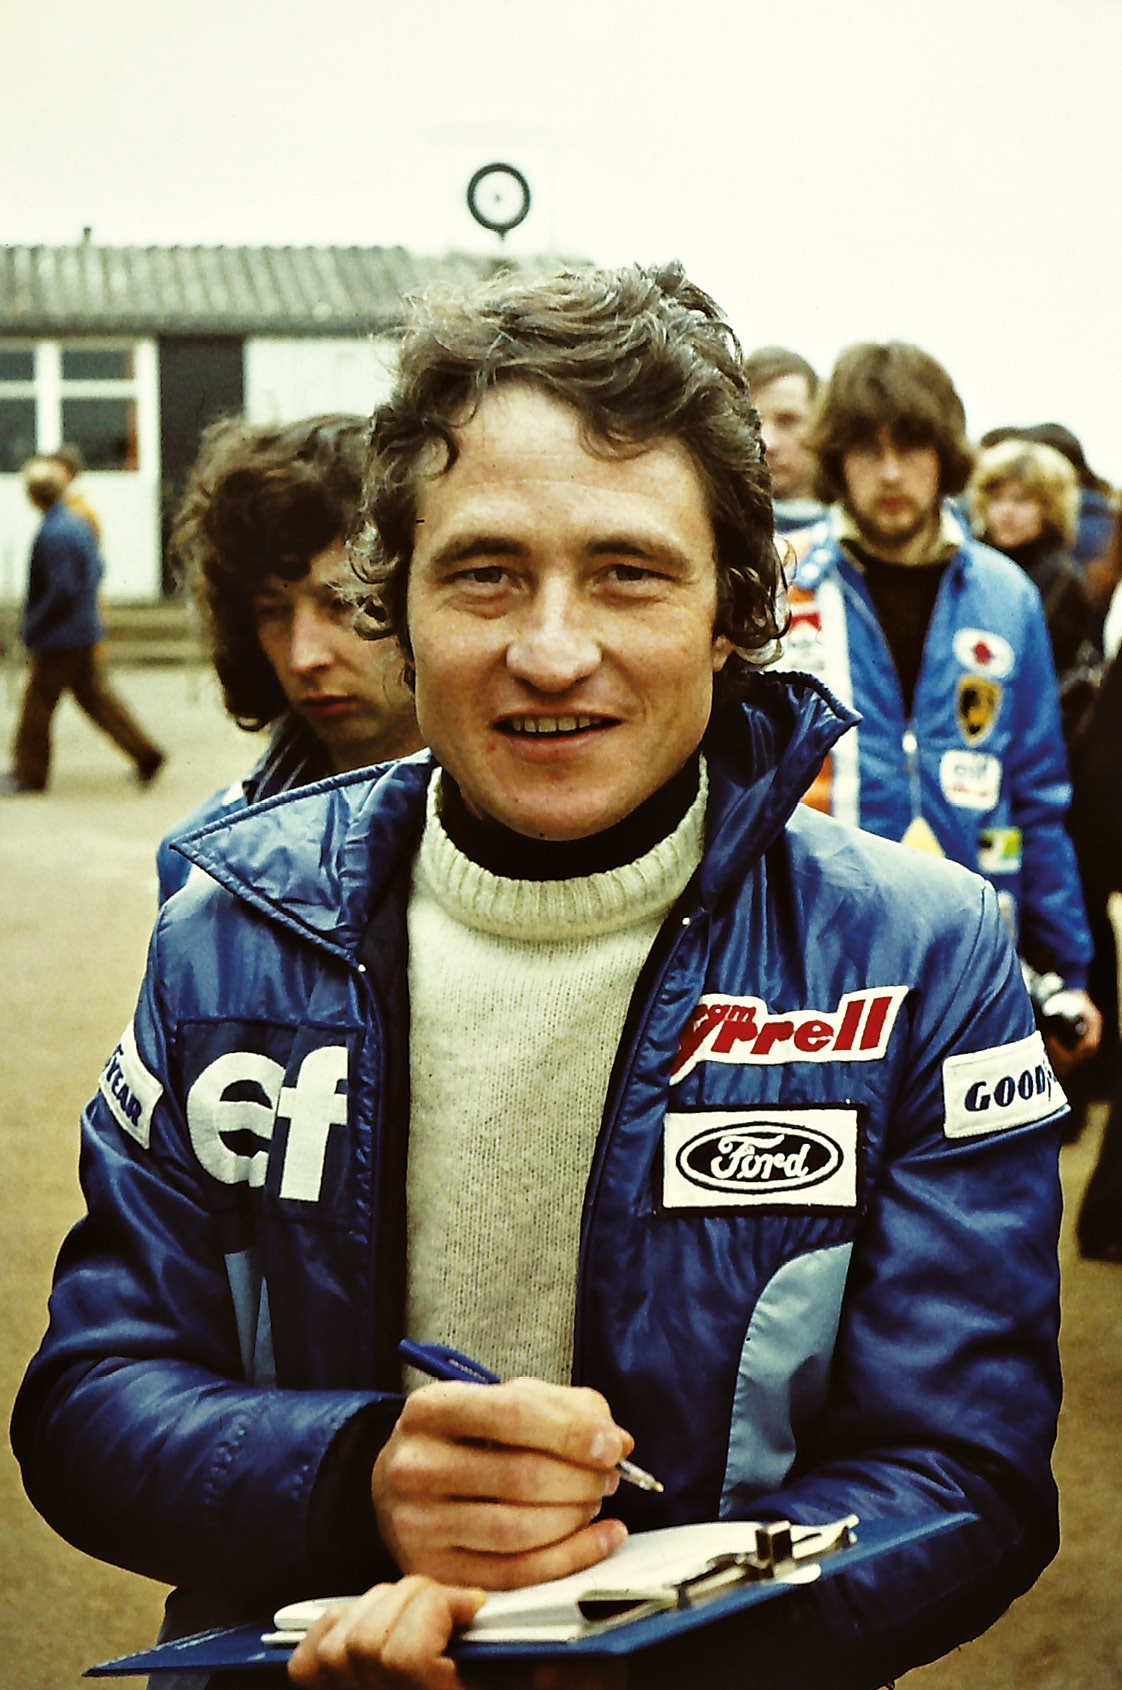 Tyrrell's Patrick Depailler takes some notes, presumably in-between signing autographs in the open paddock. He would finish fifth